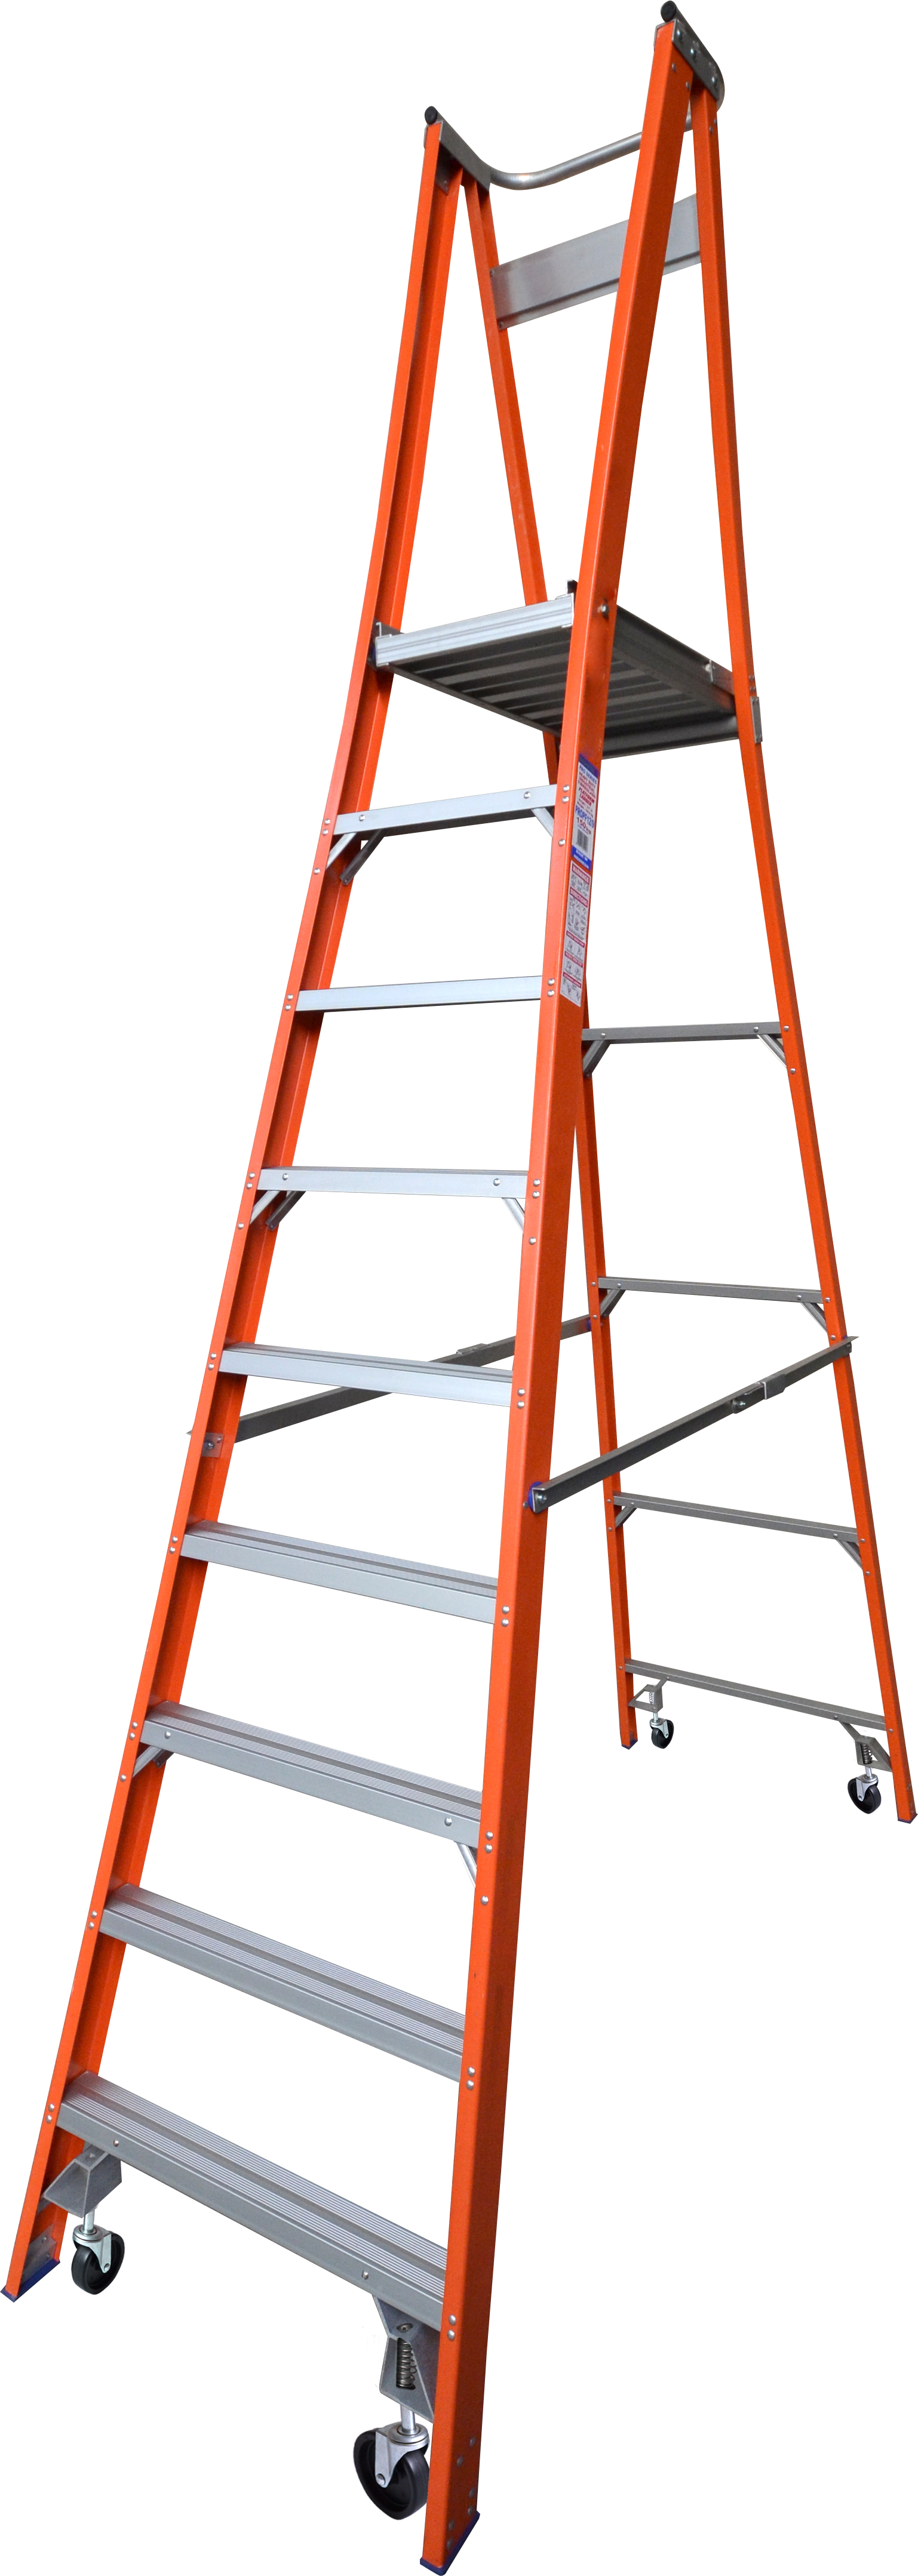 Our 9 step fiberglass platform ladders have 150kg capacity, 2.7M platform height & 3.7M total height. Its non conductive, with solid 90cm high guard rail & anti slip work platform. Made to conforms to Australian safety standards.